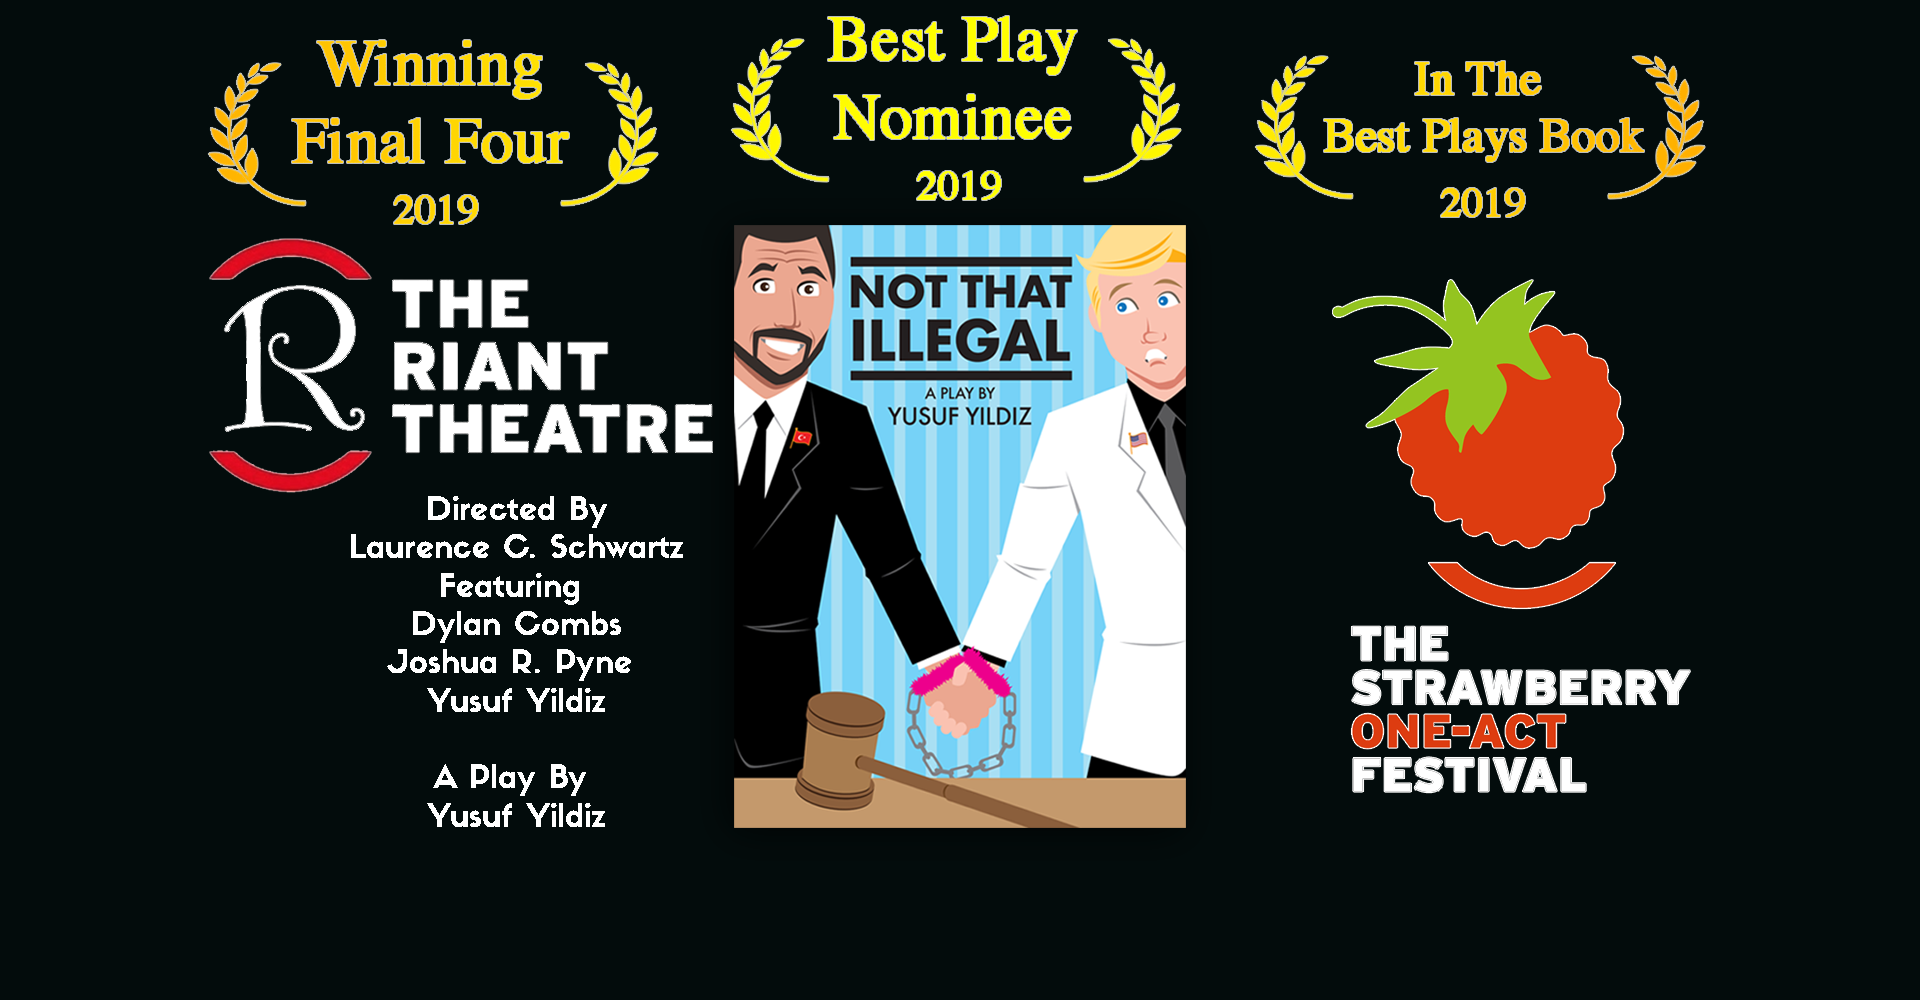 The-Strawberry-One-Act-Festival-2019